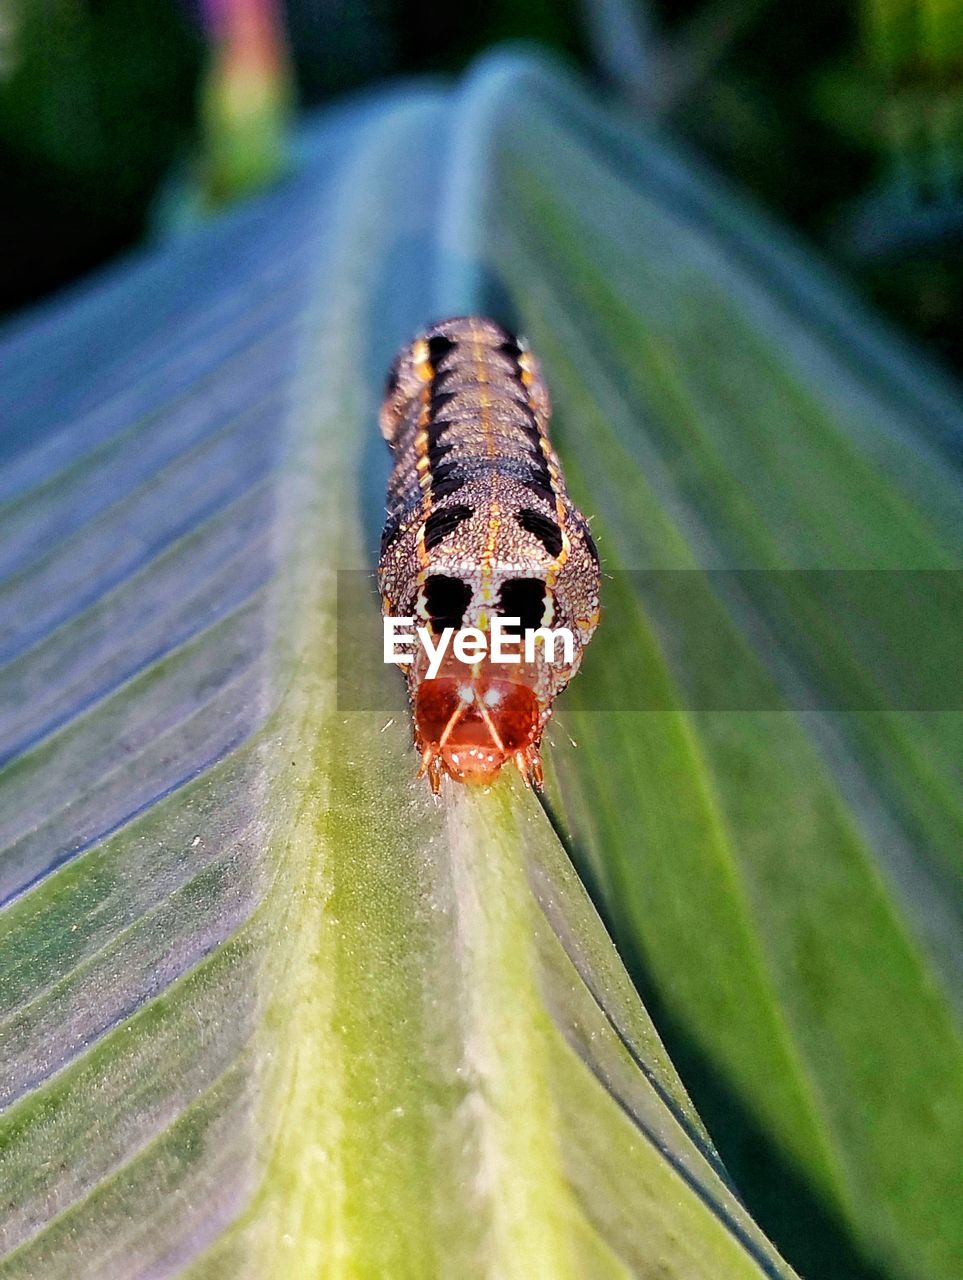 close-up, insect, invertebrate, one animal, animal themes, animal, day, selective focus, animals in the wild, animal wildlife, no people, focus on foreground, plant, plant part, nature, leaf, arthropod, caterpillar, outdoors, spider, butterfly - insect